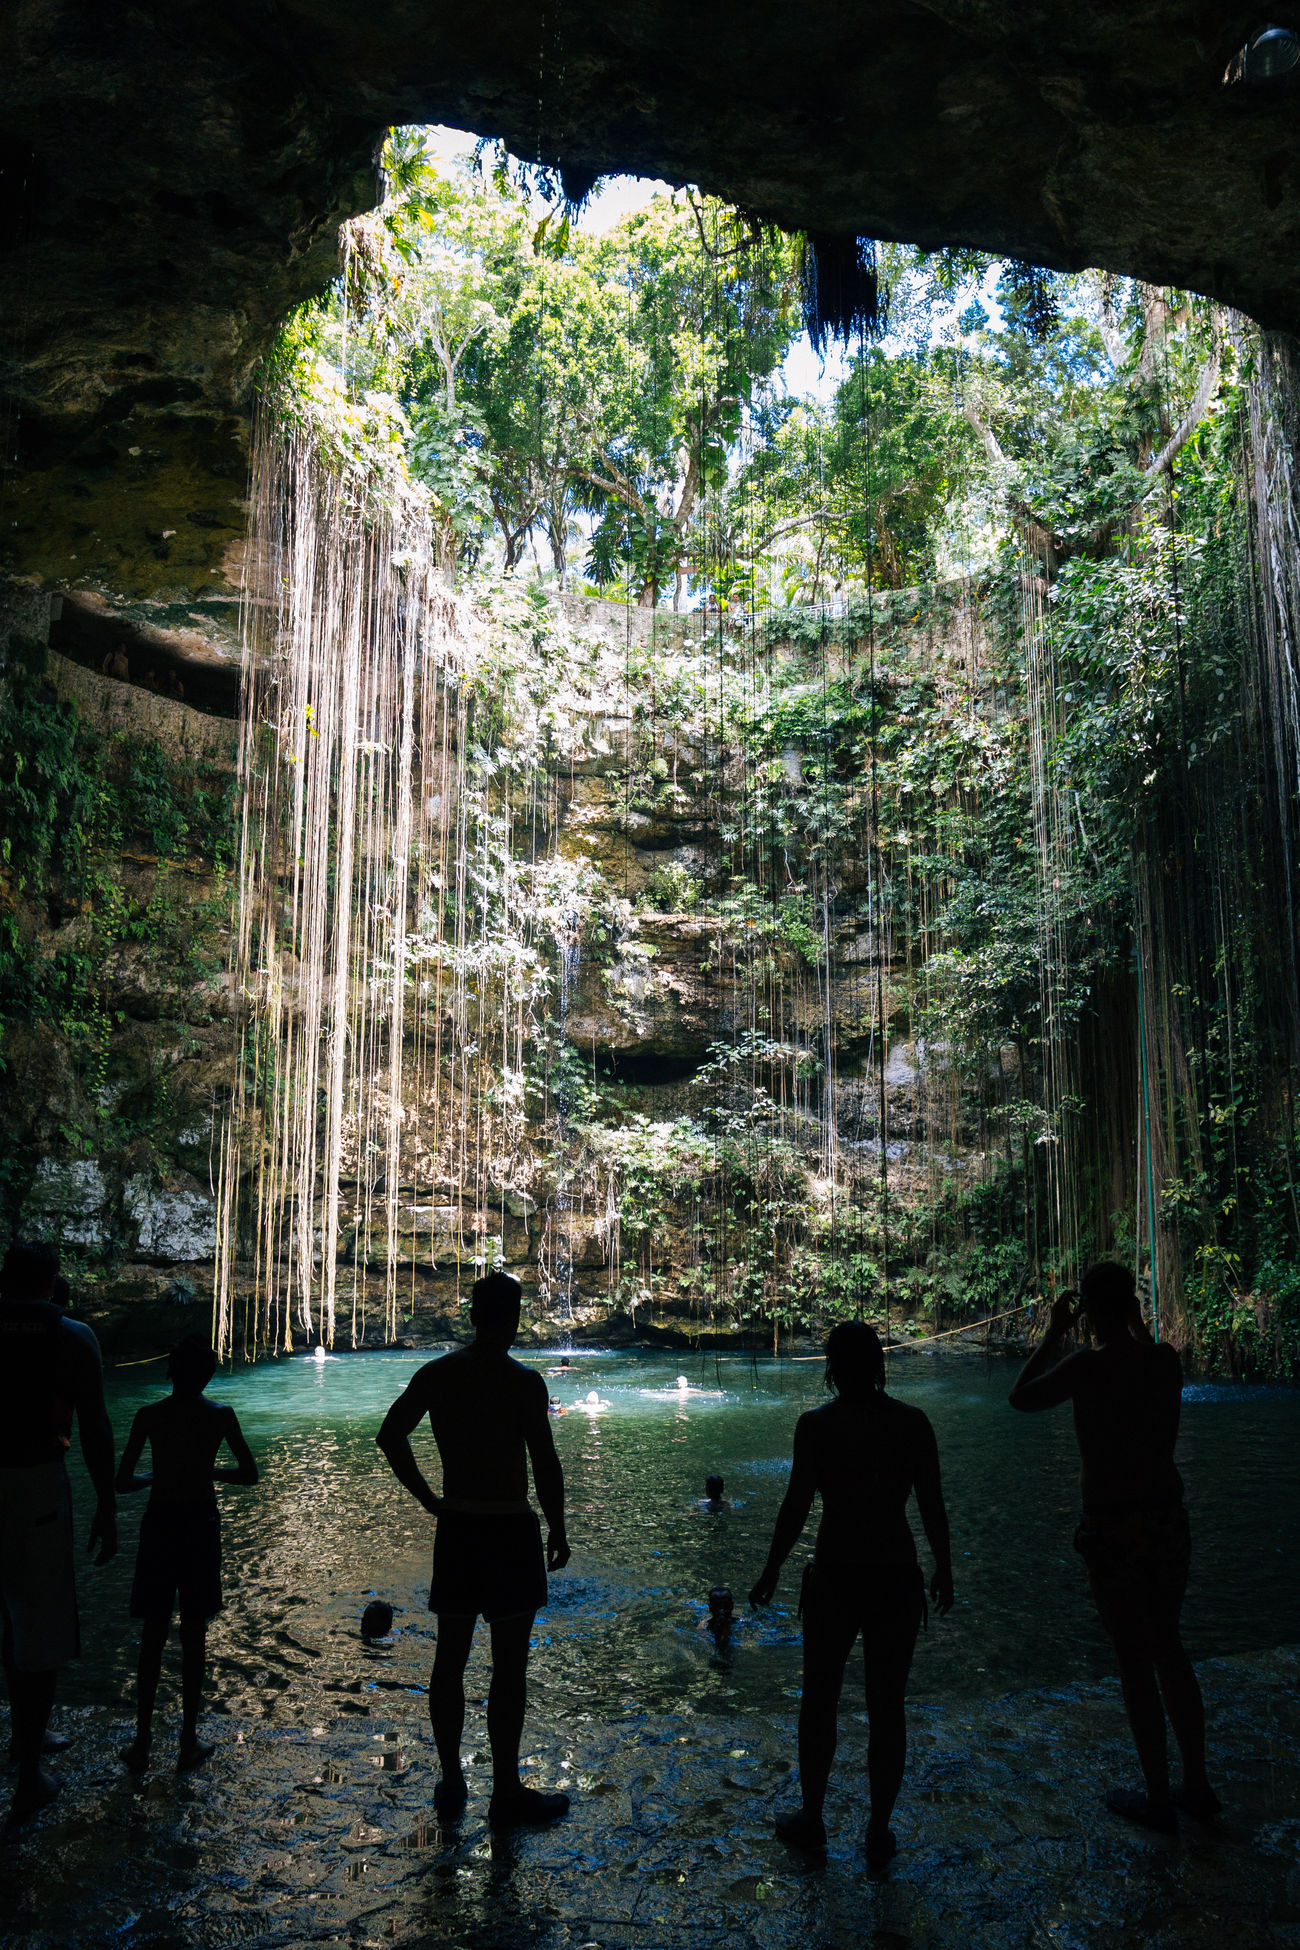 Cenote Ik-kil, Chichen Itza, Yucatan, Mexico Beauty In Nature Cave Cenote Cenote Ik Kil Cenotes Cueva Lifestyles Mexico Nature Outdoors People Real People Roots Silhouette Silhouettes Tree Two People Vacations Water Yucatan Mexico Yúcatan